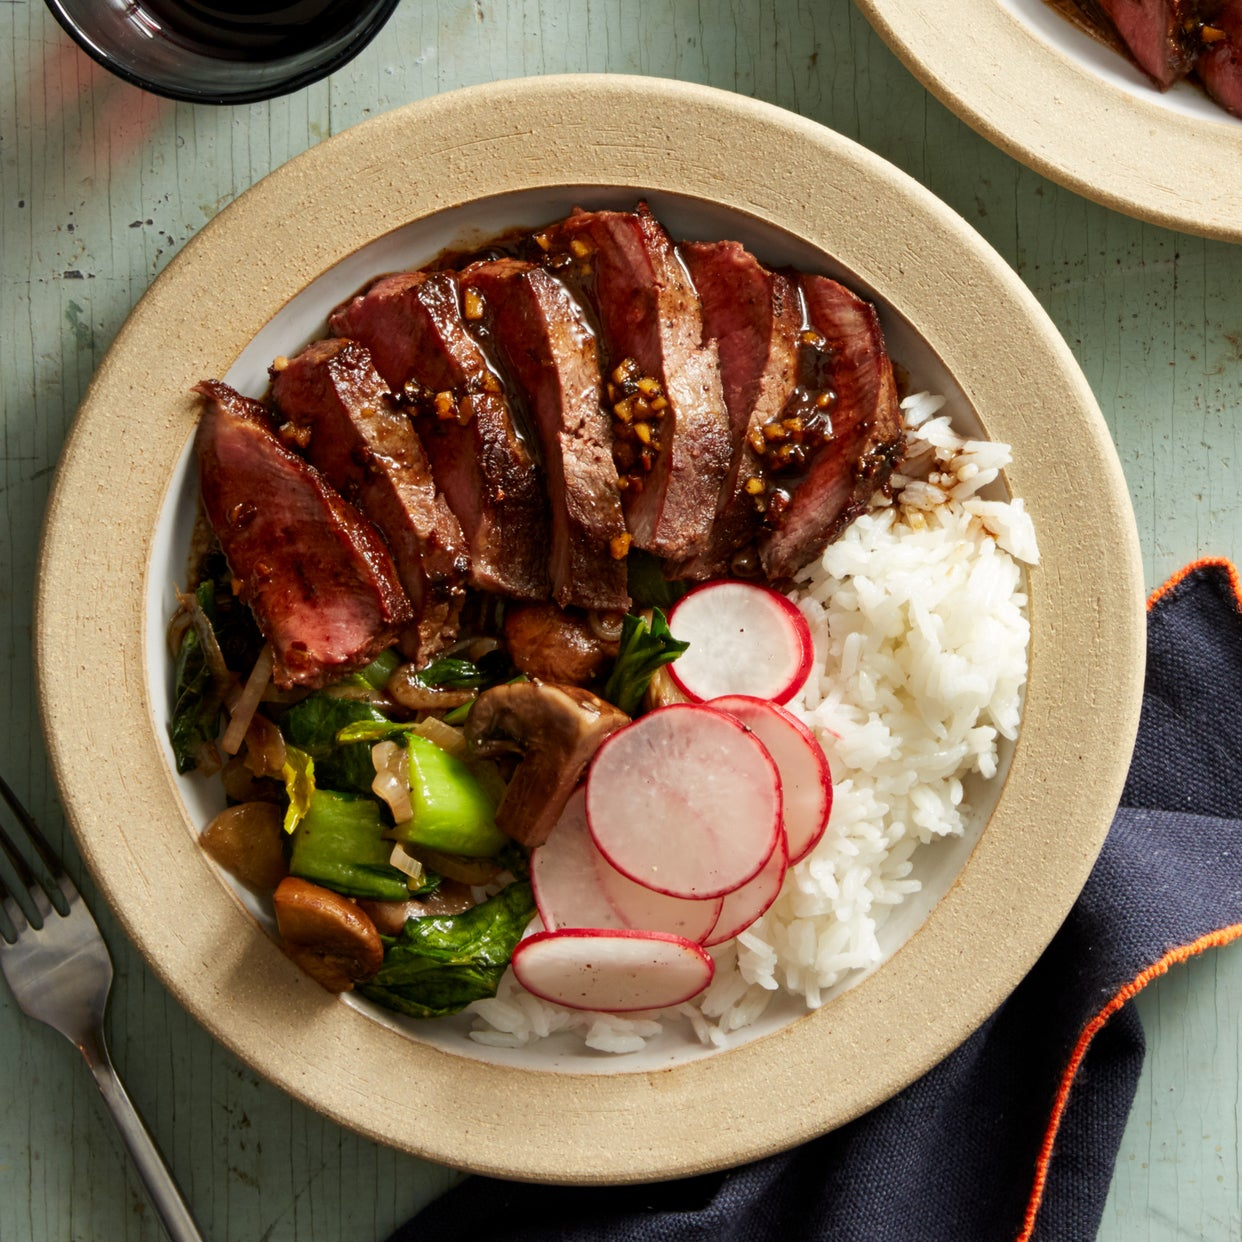 Top Chef Ginger-Marinated Grassfed Steaks with Stir-Fried Vegetables & Jasmine Rice